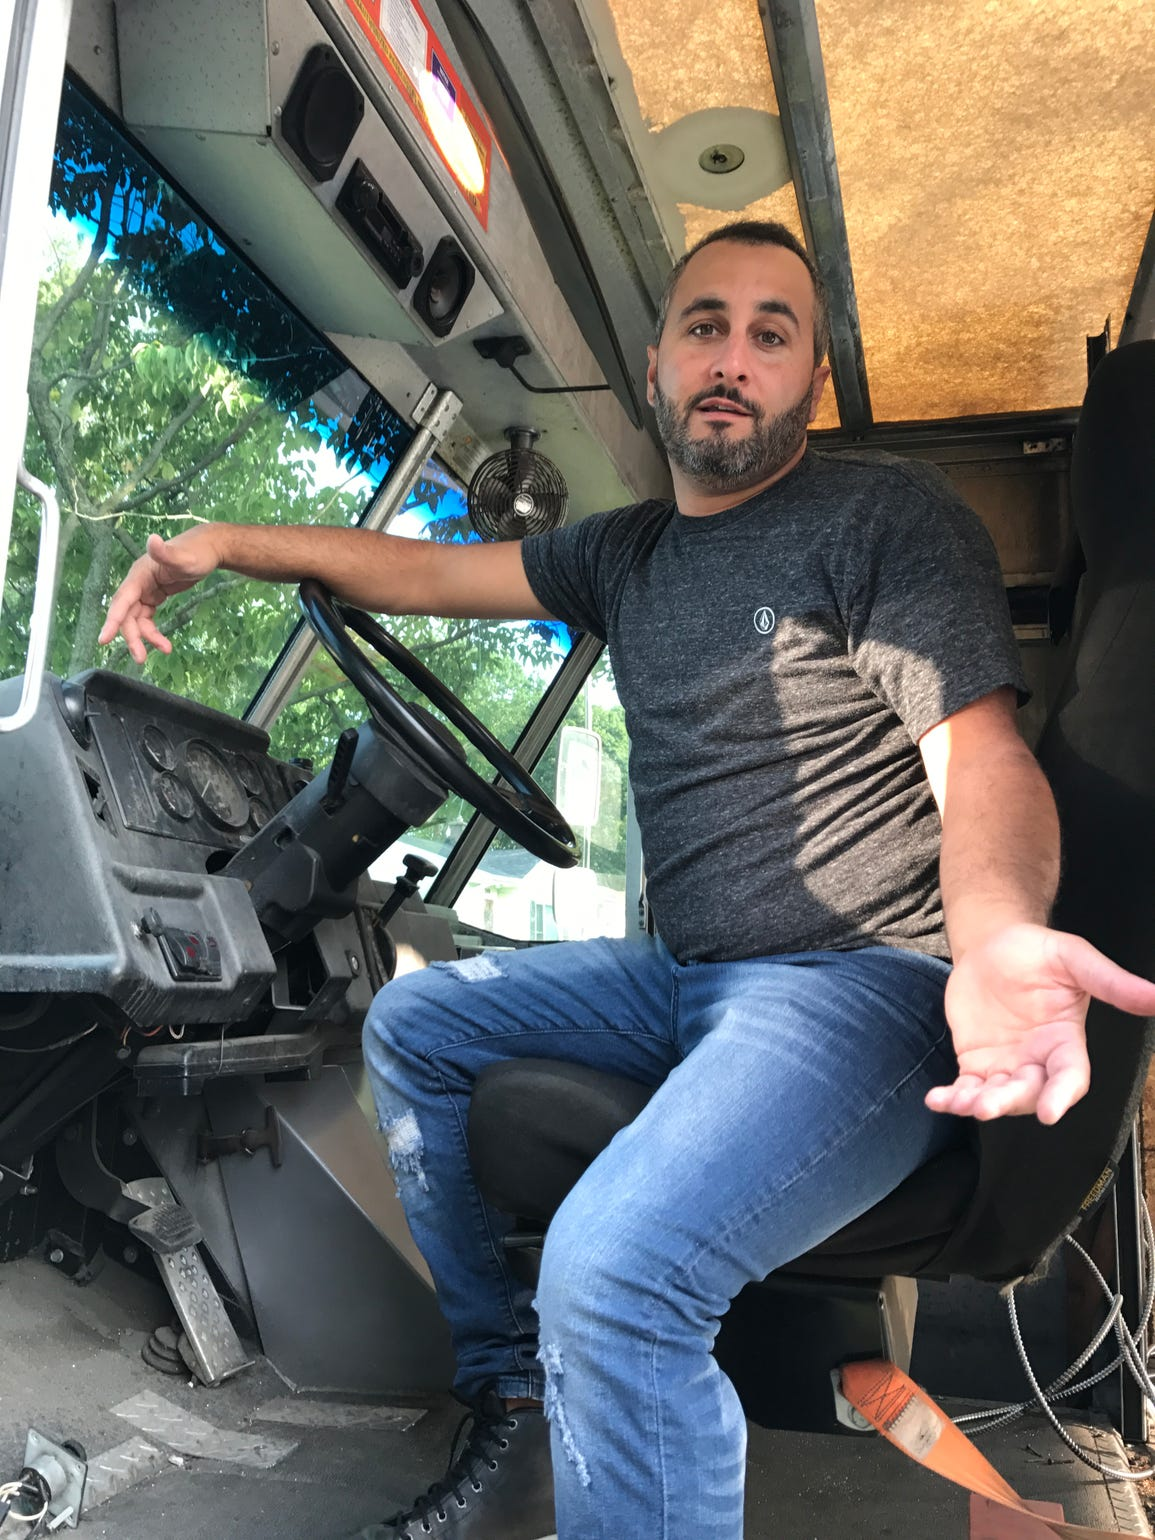 Joe LoPresti sits in his unfinished food truck after